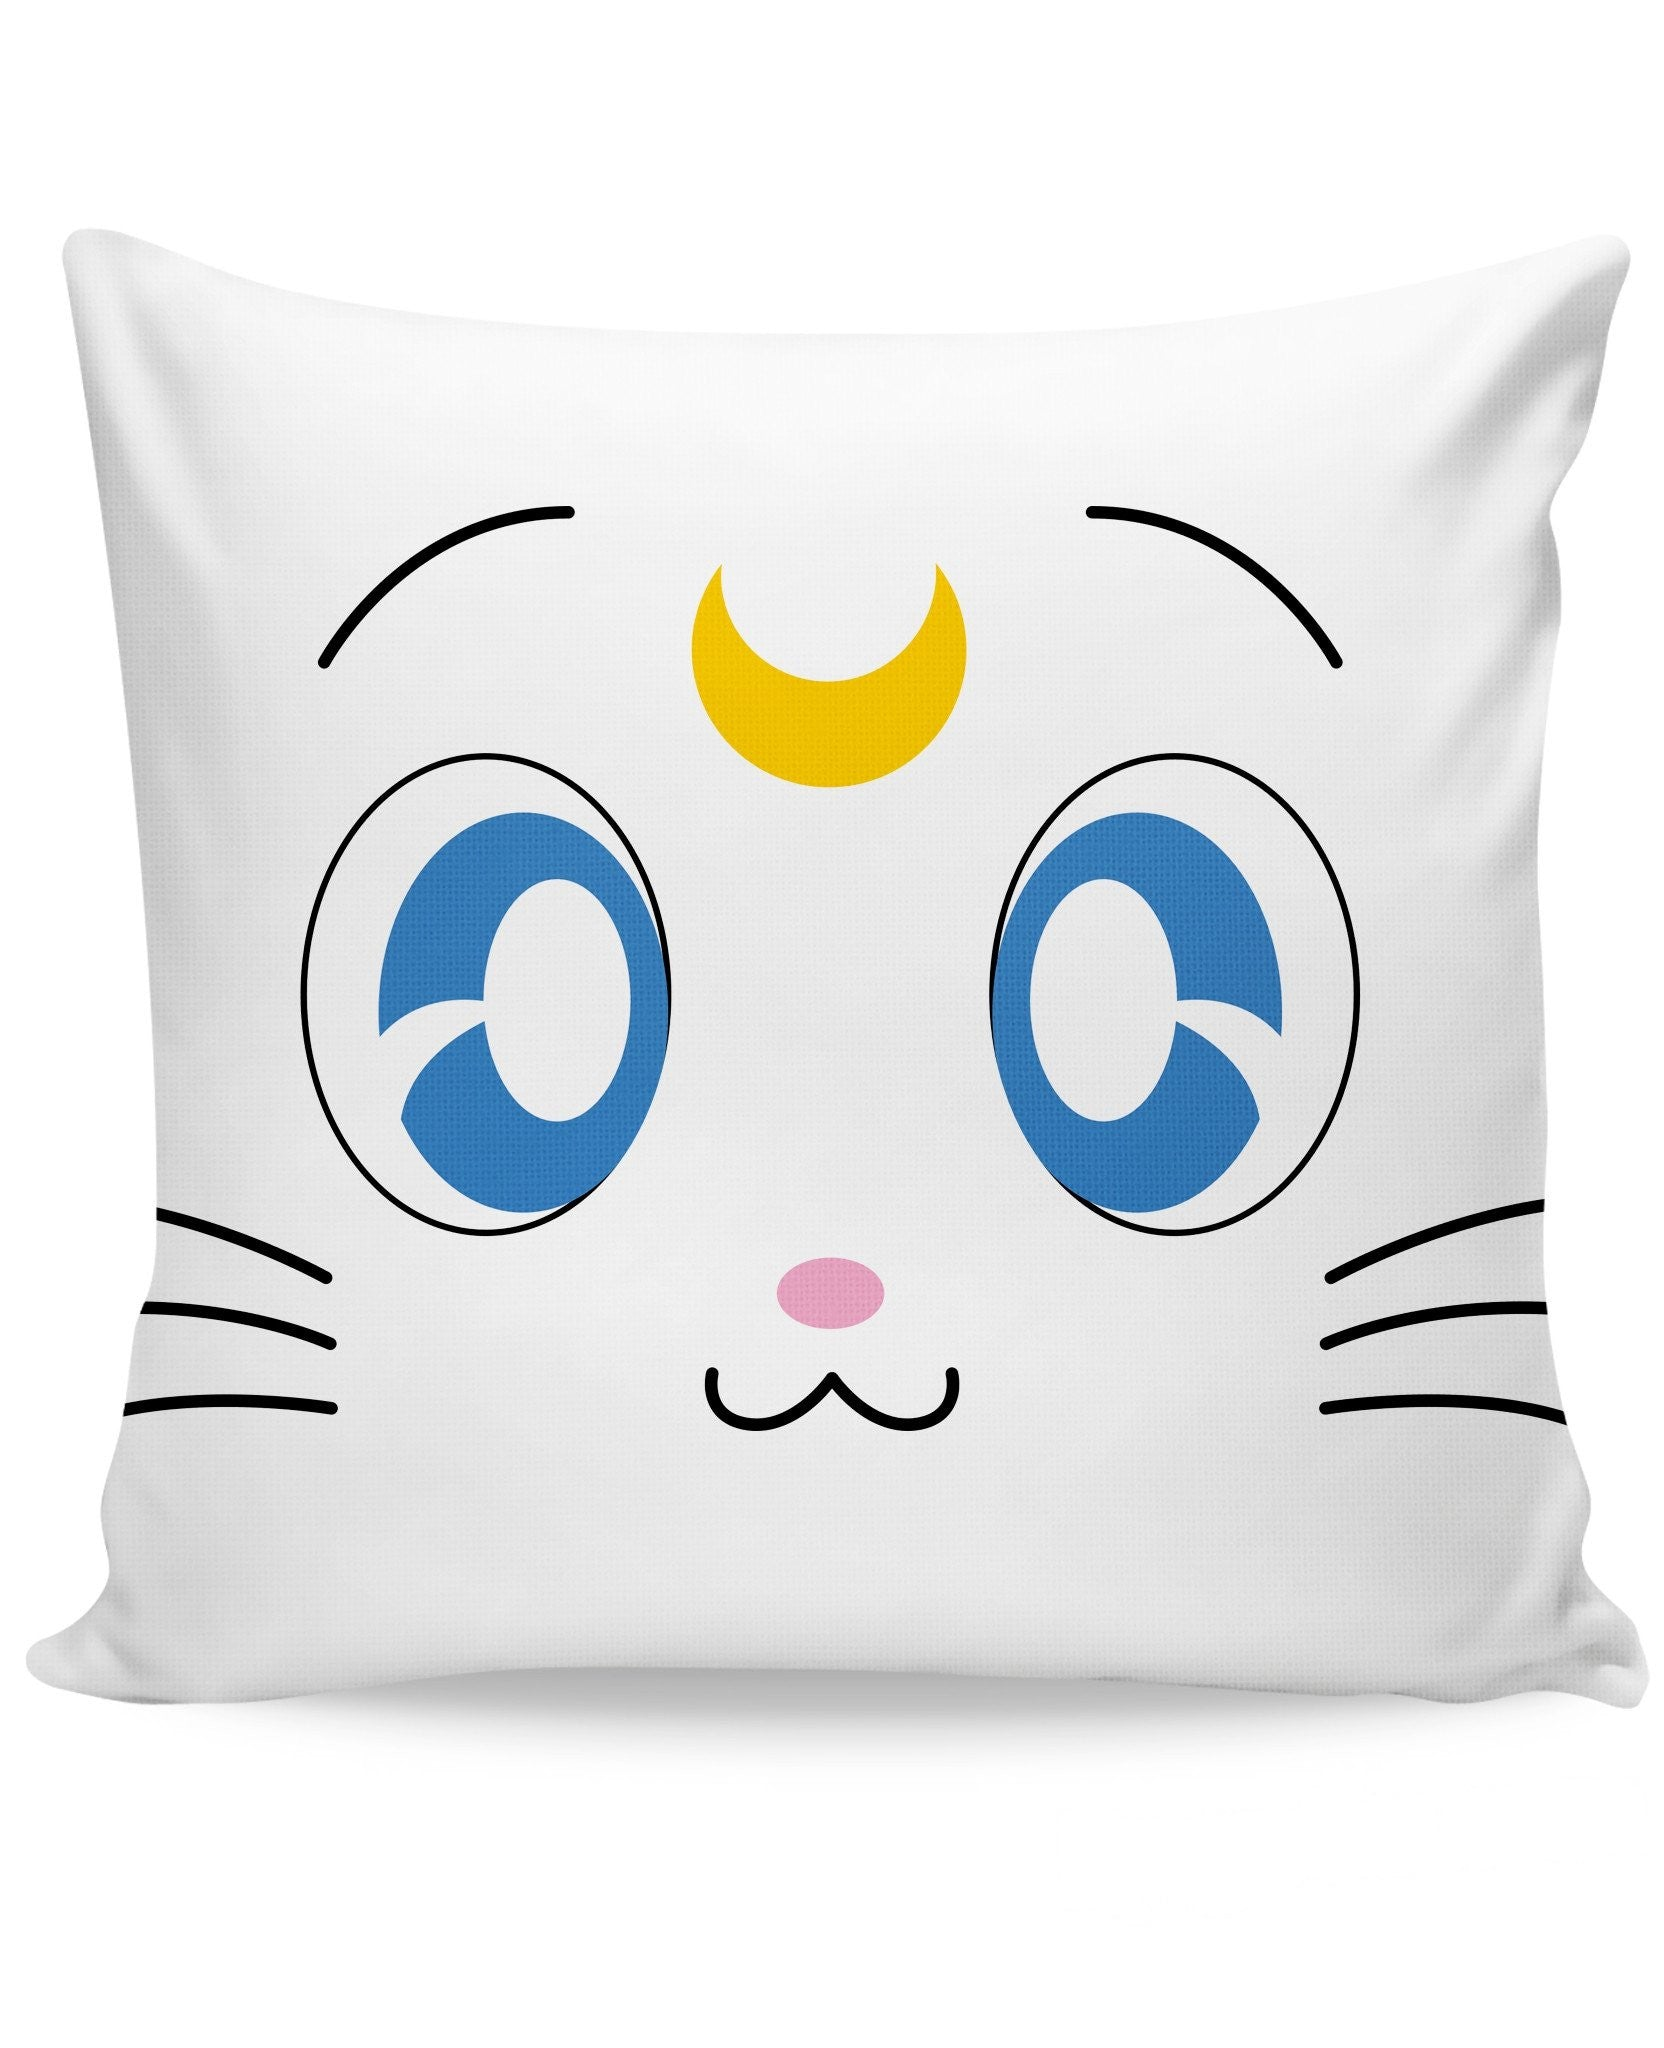 Artemis Couch Pillow - TShirtsRUS.co